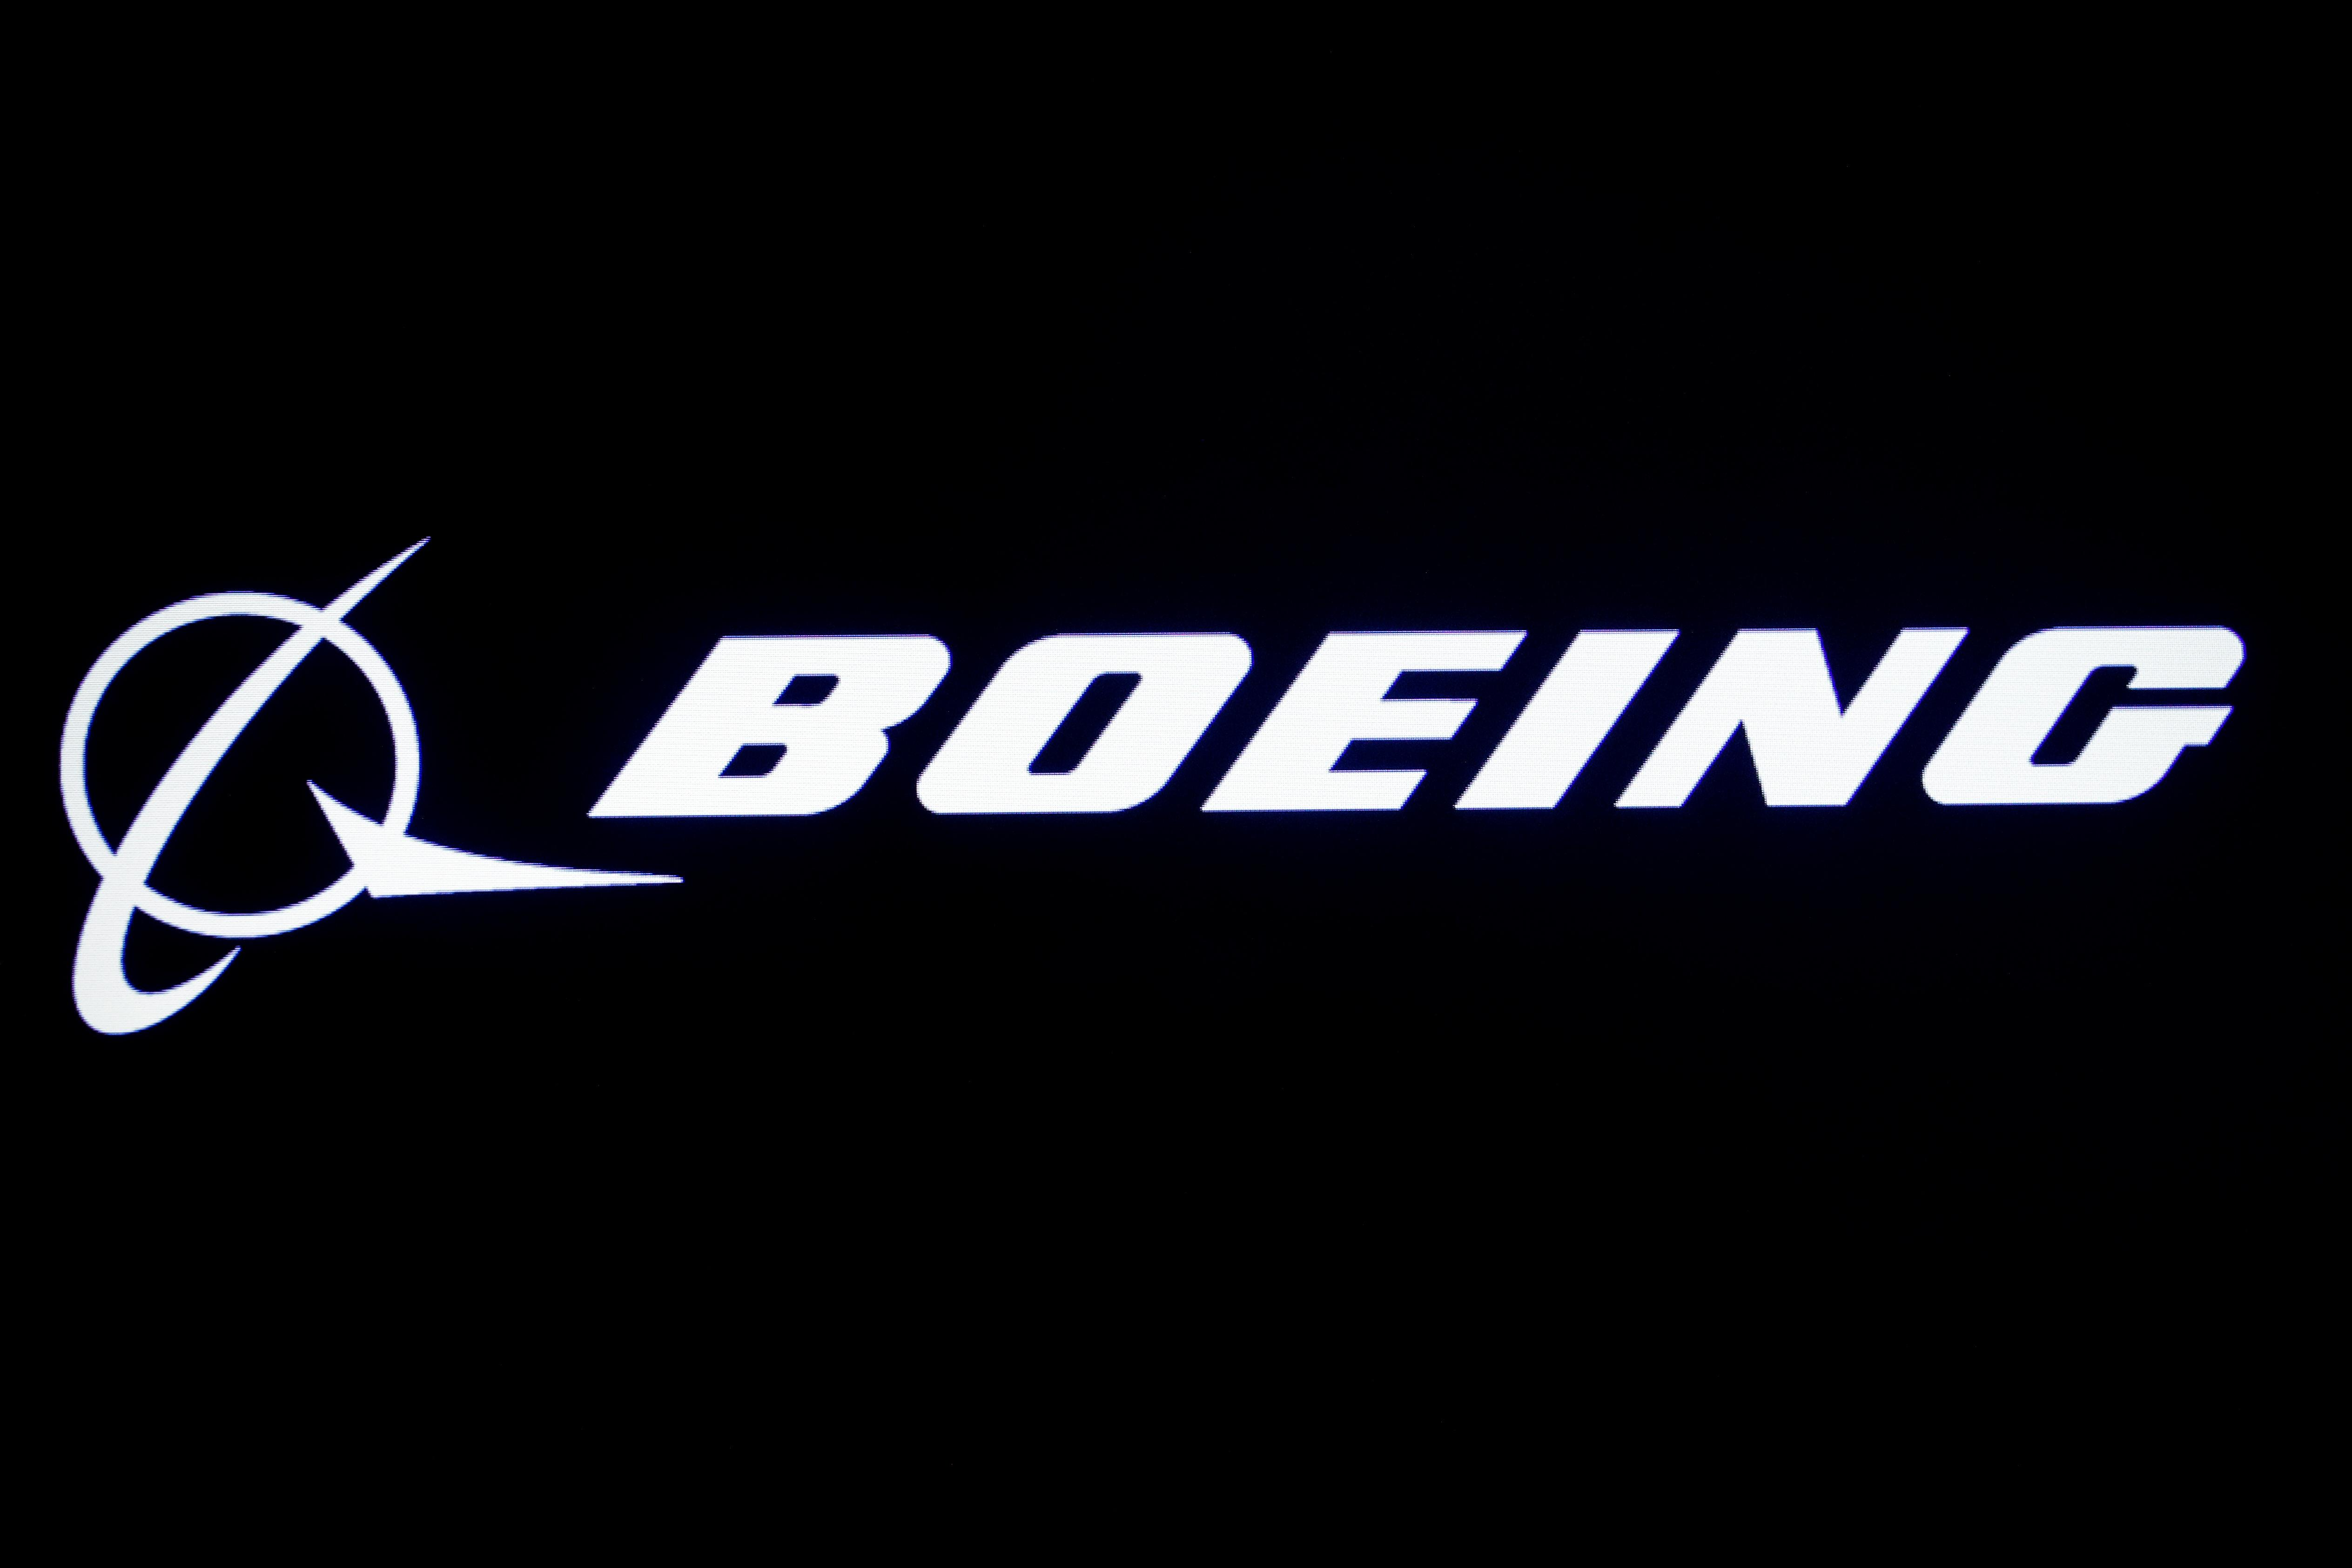 Boeing bows out of multibillion-dollar Minuteman missile...